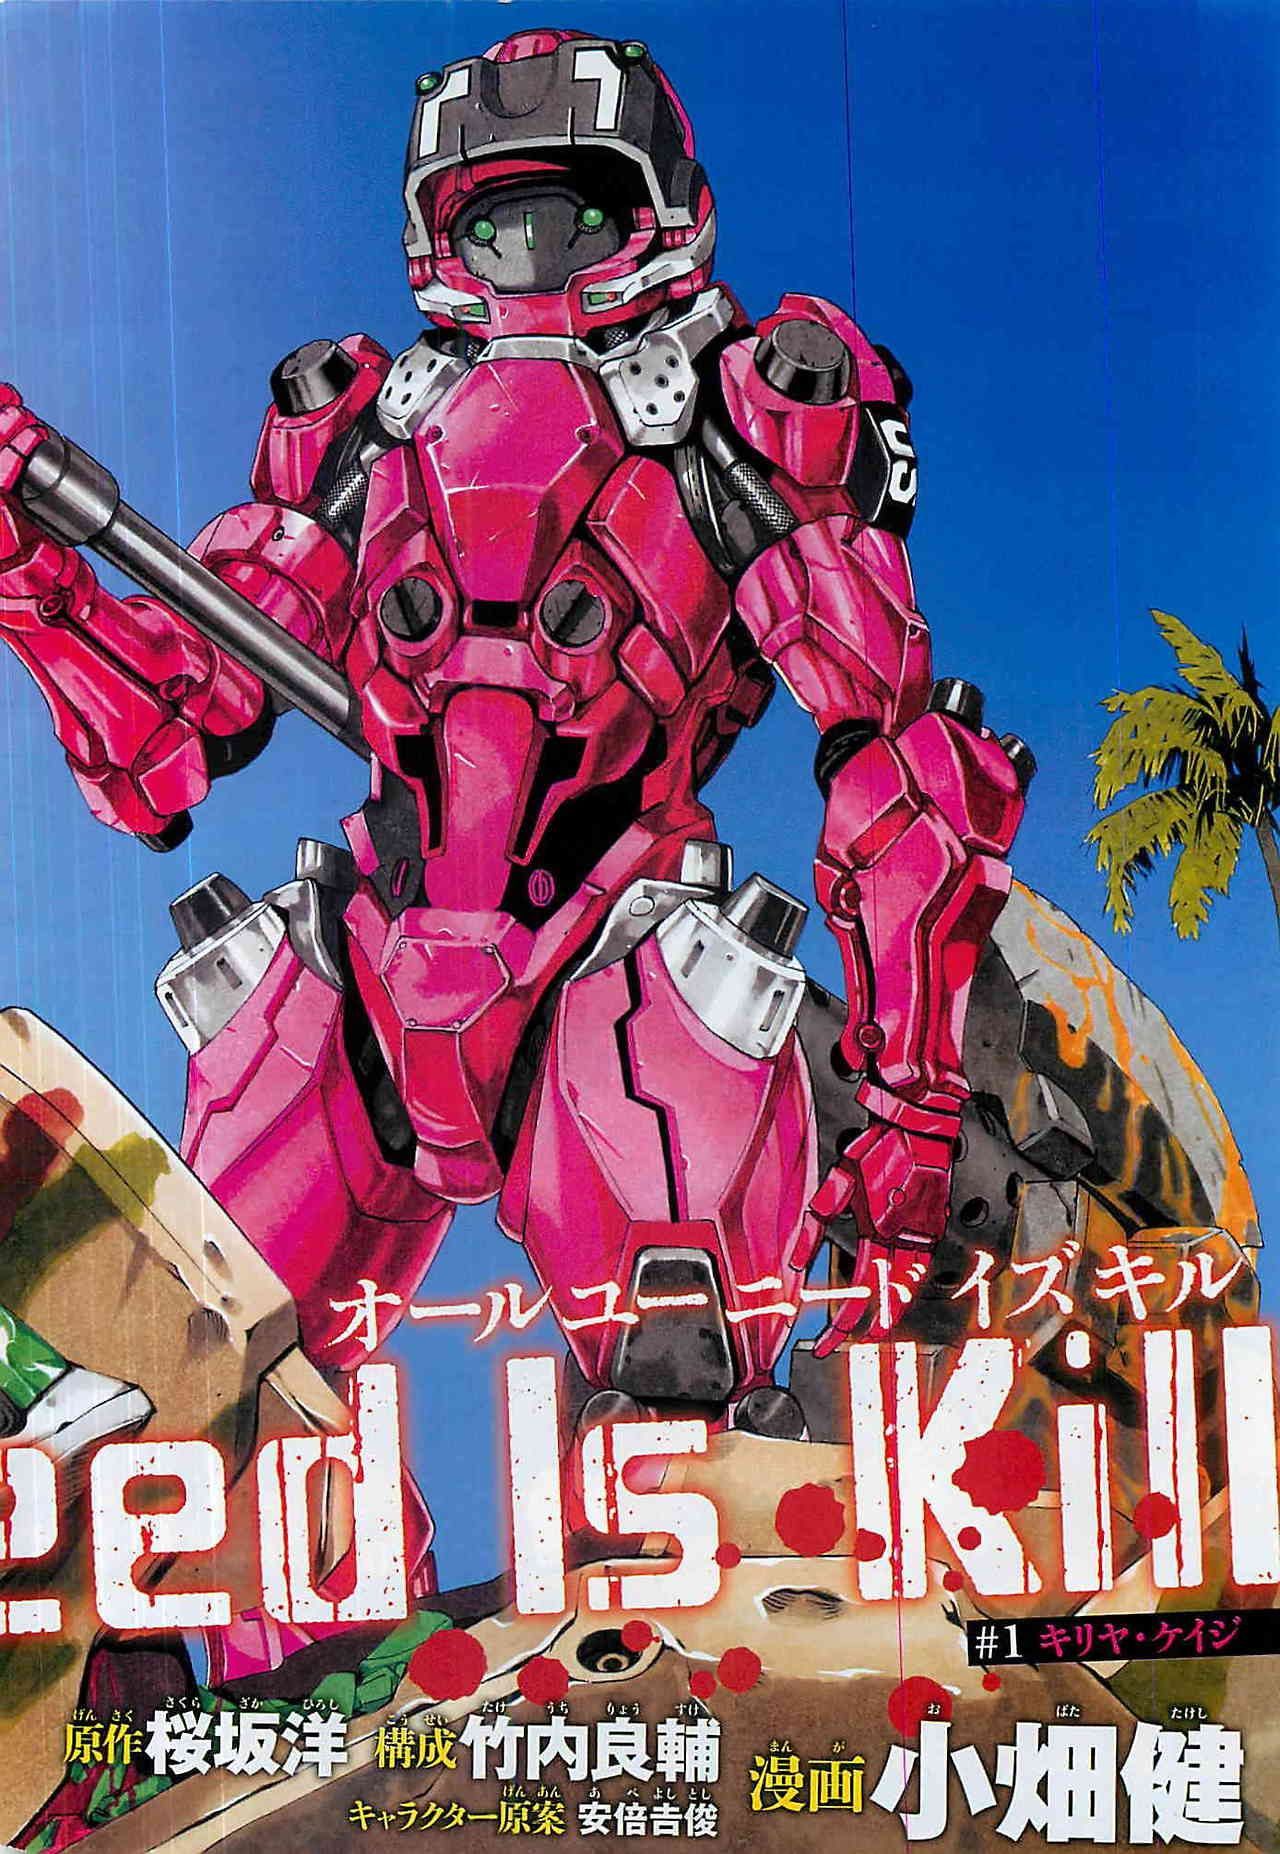 All You Need Is Kill Kill Your Mind Your Soul Your